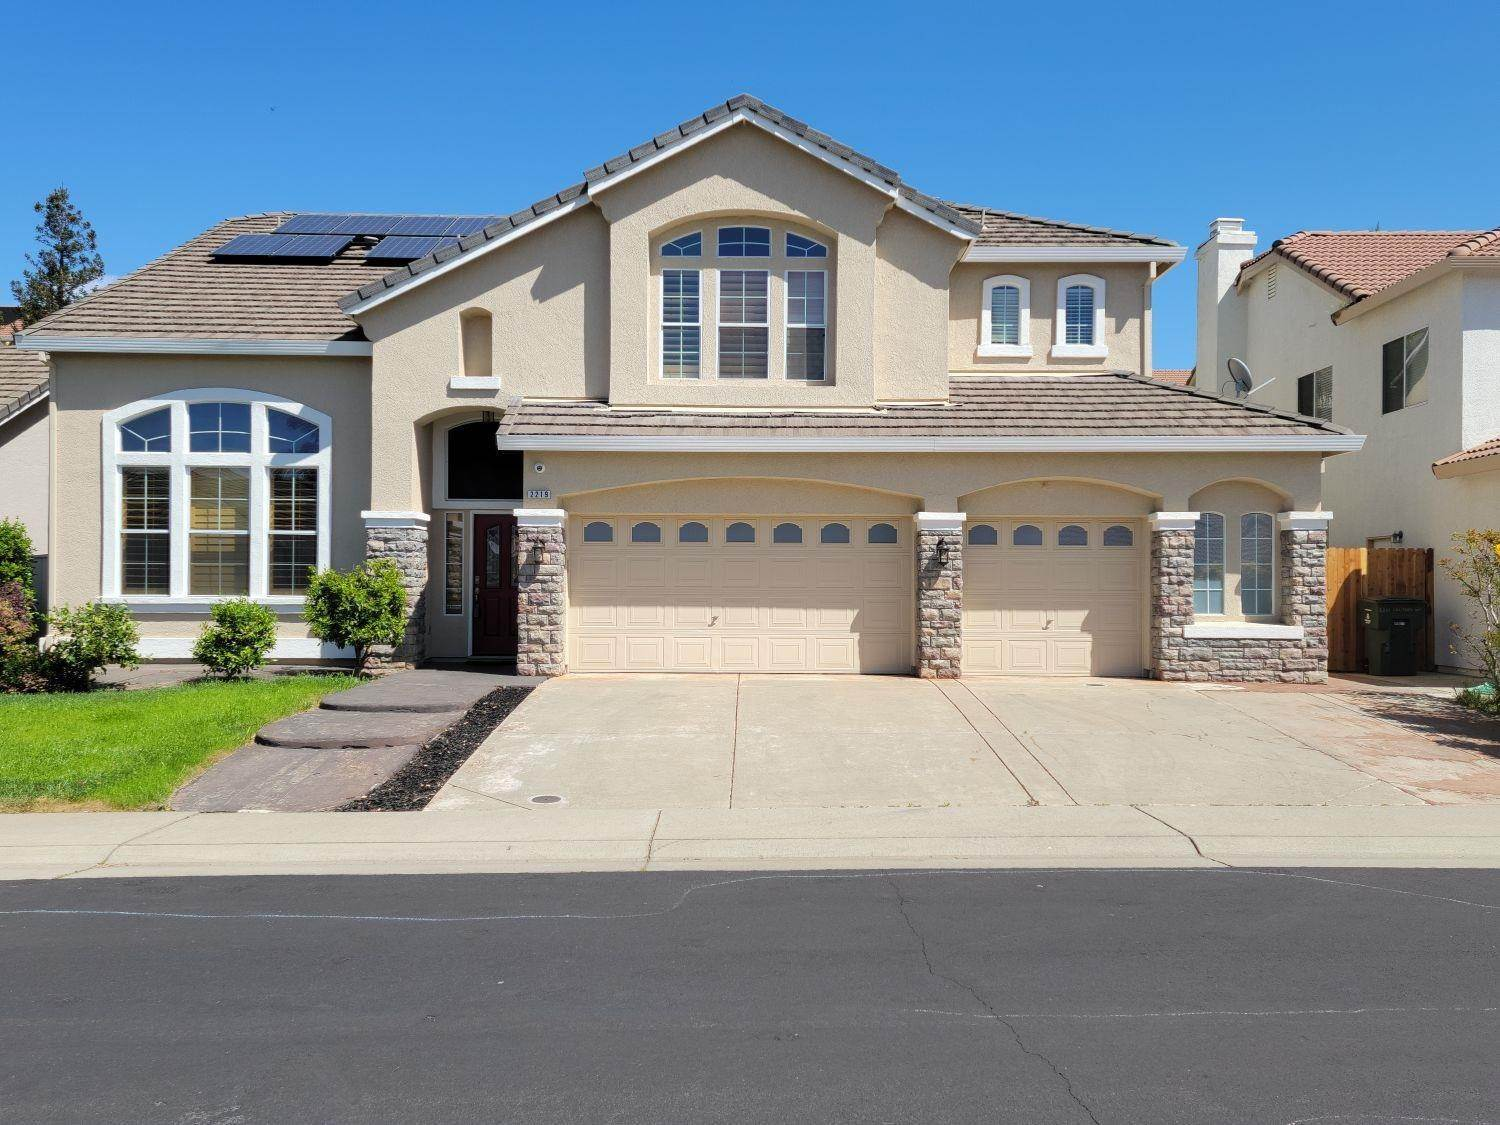 Single Family Homes for Active at 2219 Solitude Way Rocklin, California 95765 United States